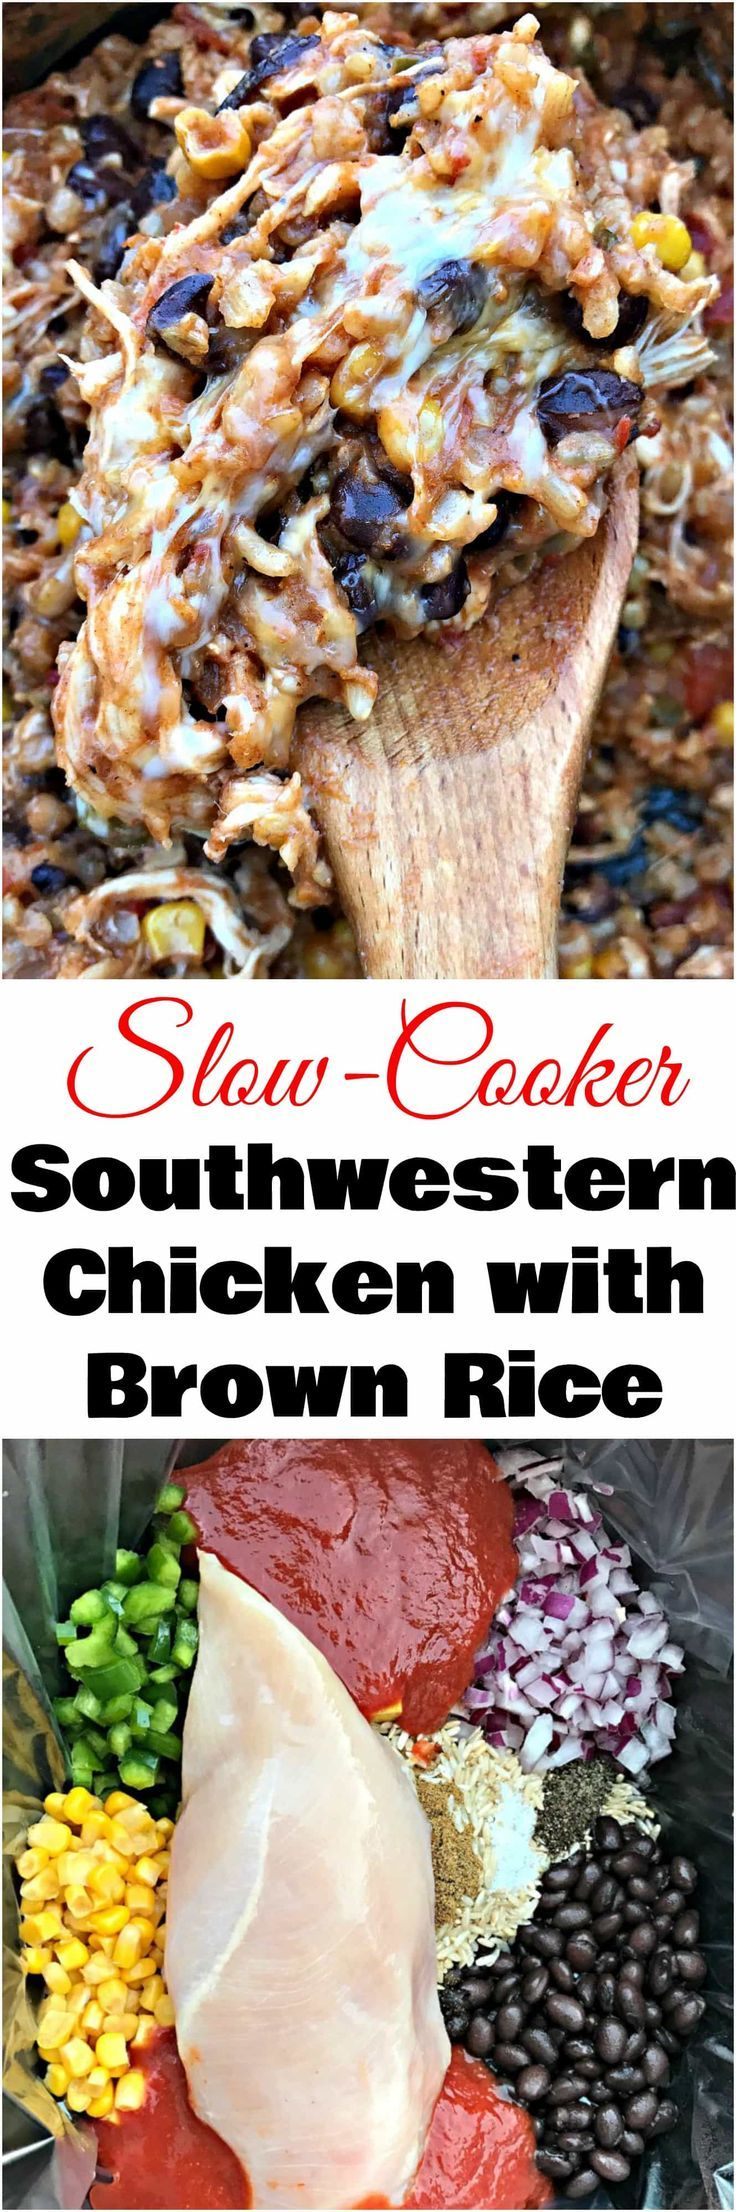 Slow-Cooker Crockpot Southwestern Chicken and Brown Rice is a quick and easy recipe with chicken, rice, and creamy cheese.